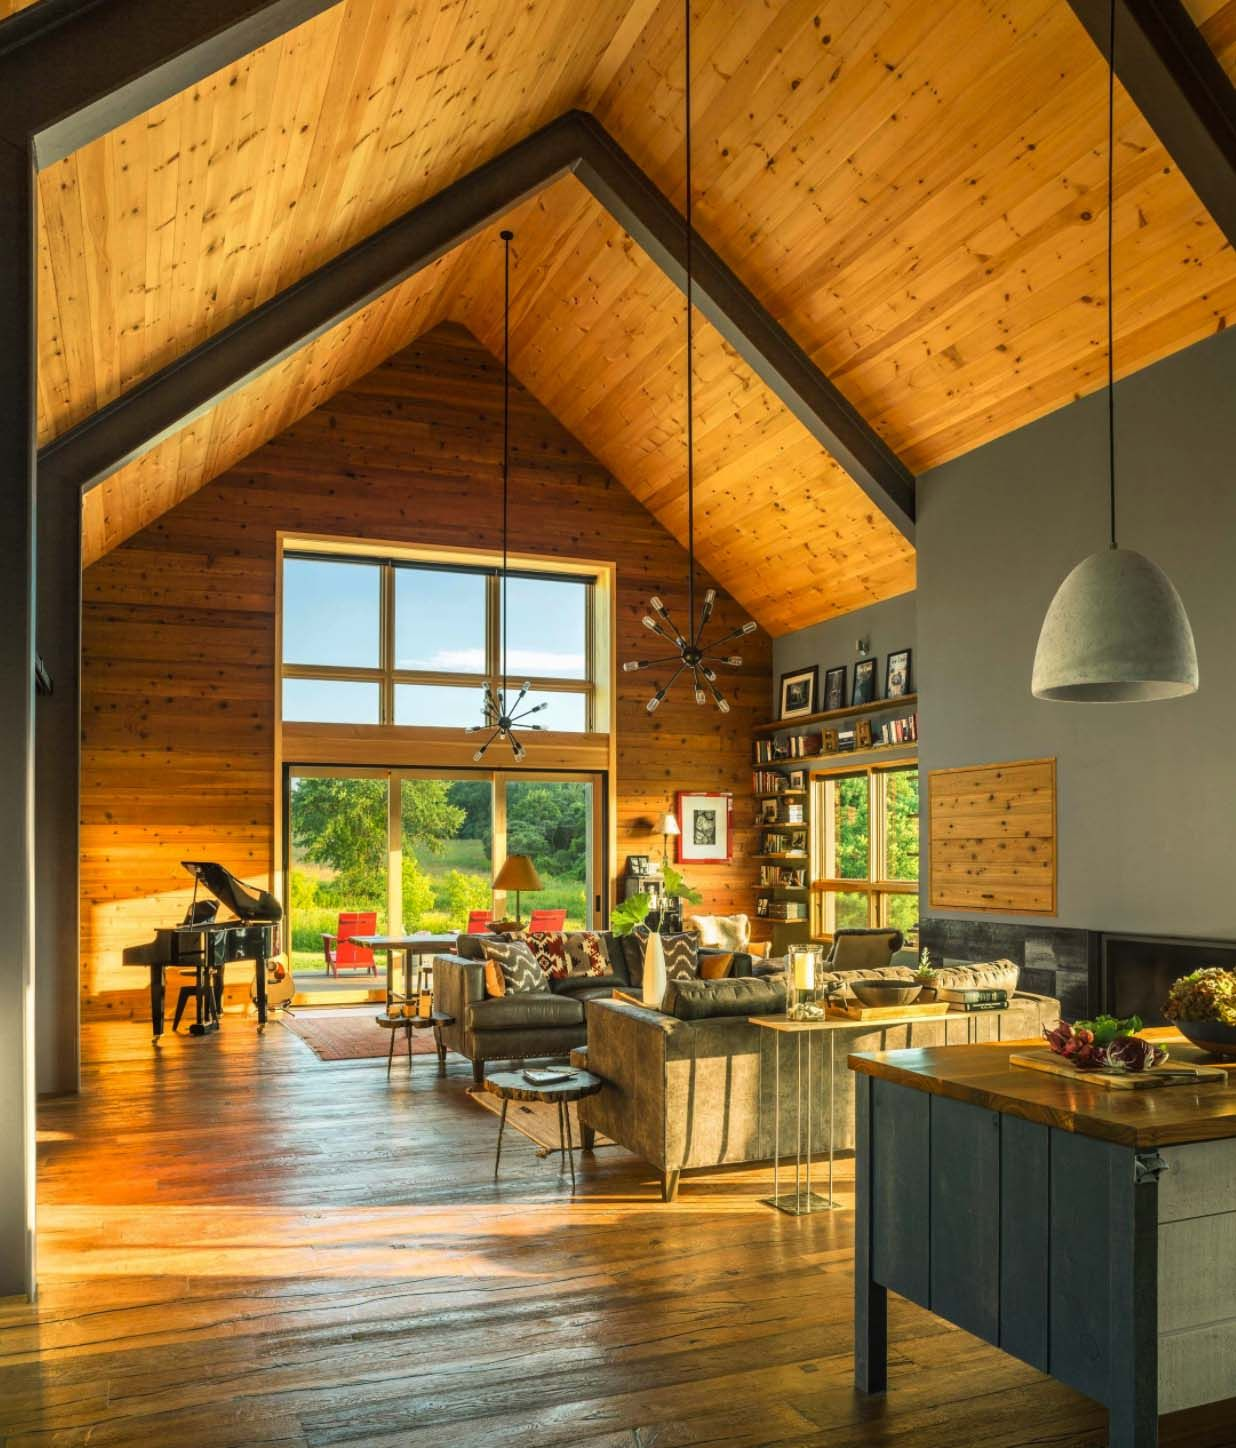 Modern Interior Design For House: Small And Cozy Modern Barn House Getaway In Vermont